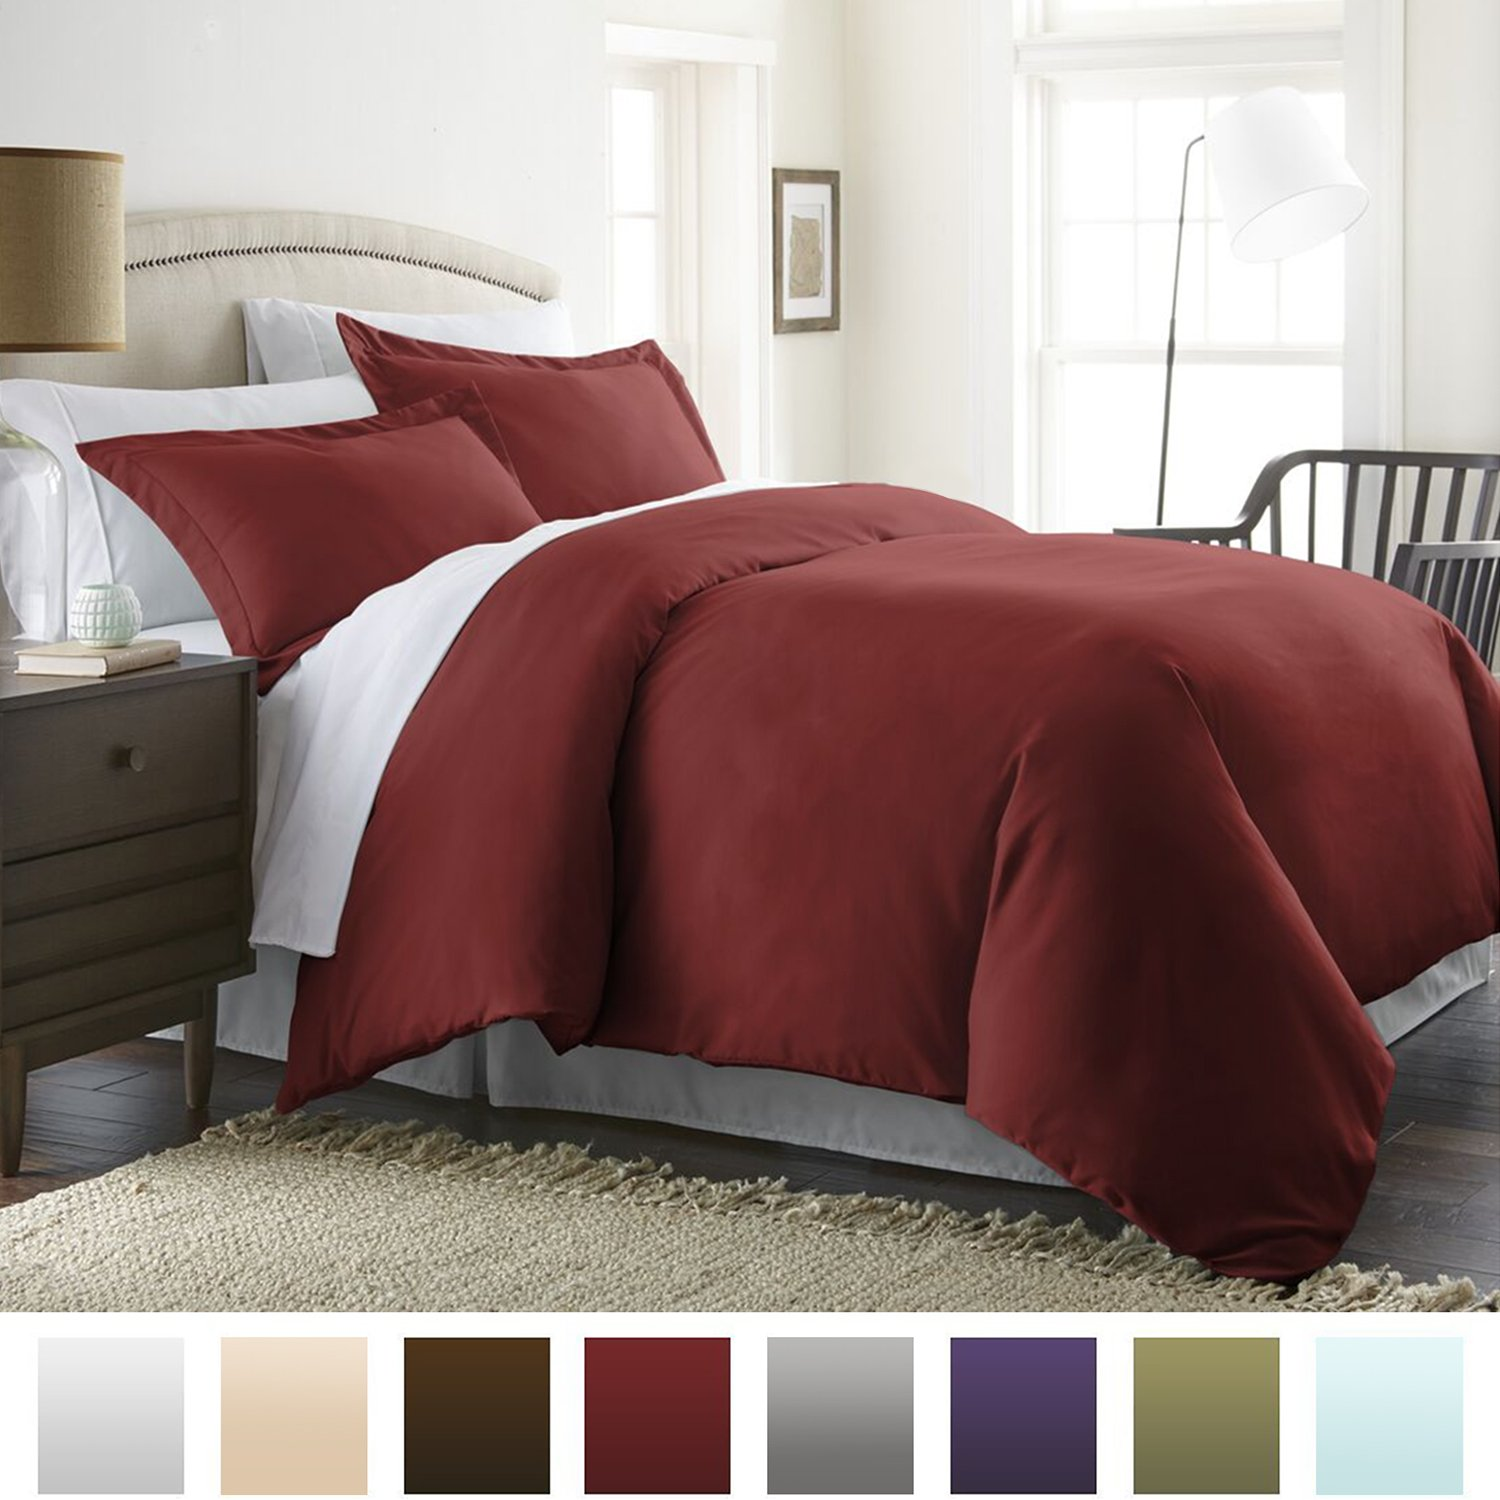 Microfiber Duvet Cover Set - Hypoallergenic - Full/Queen, Burgundy